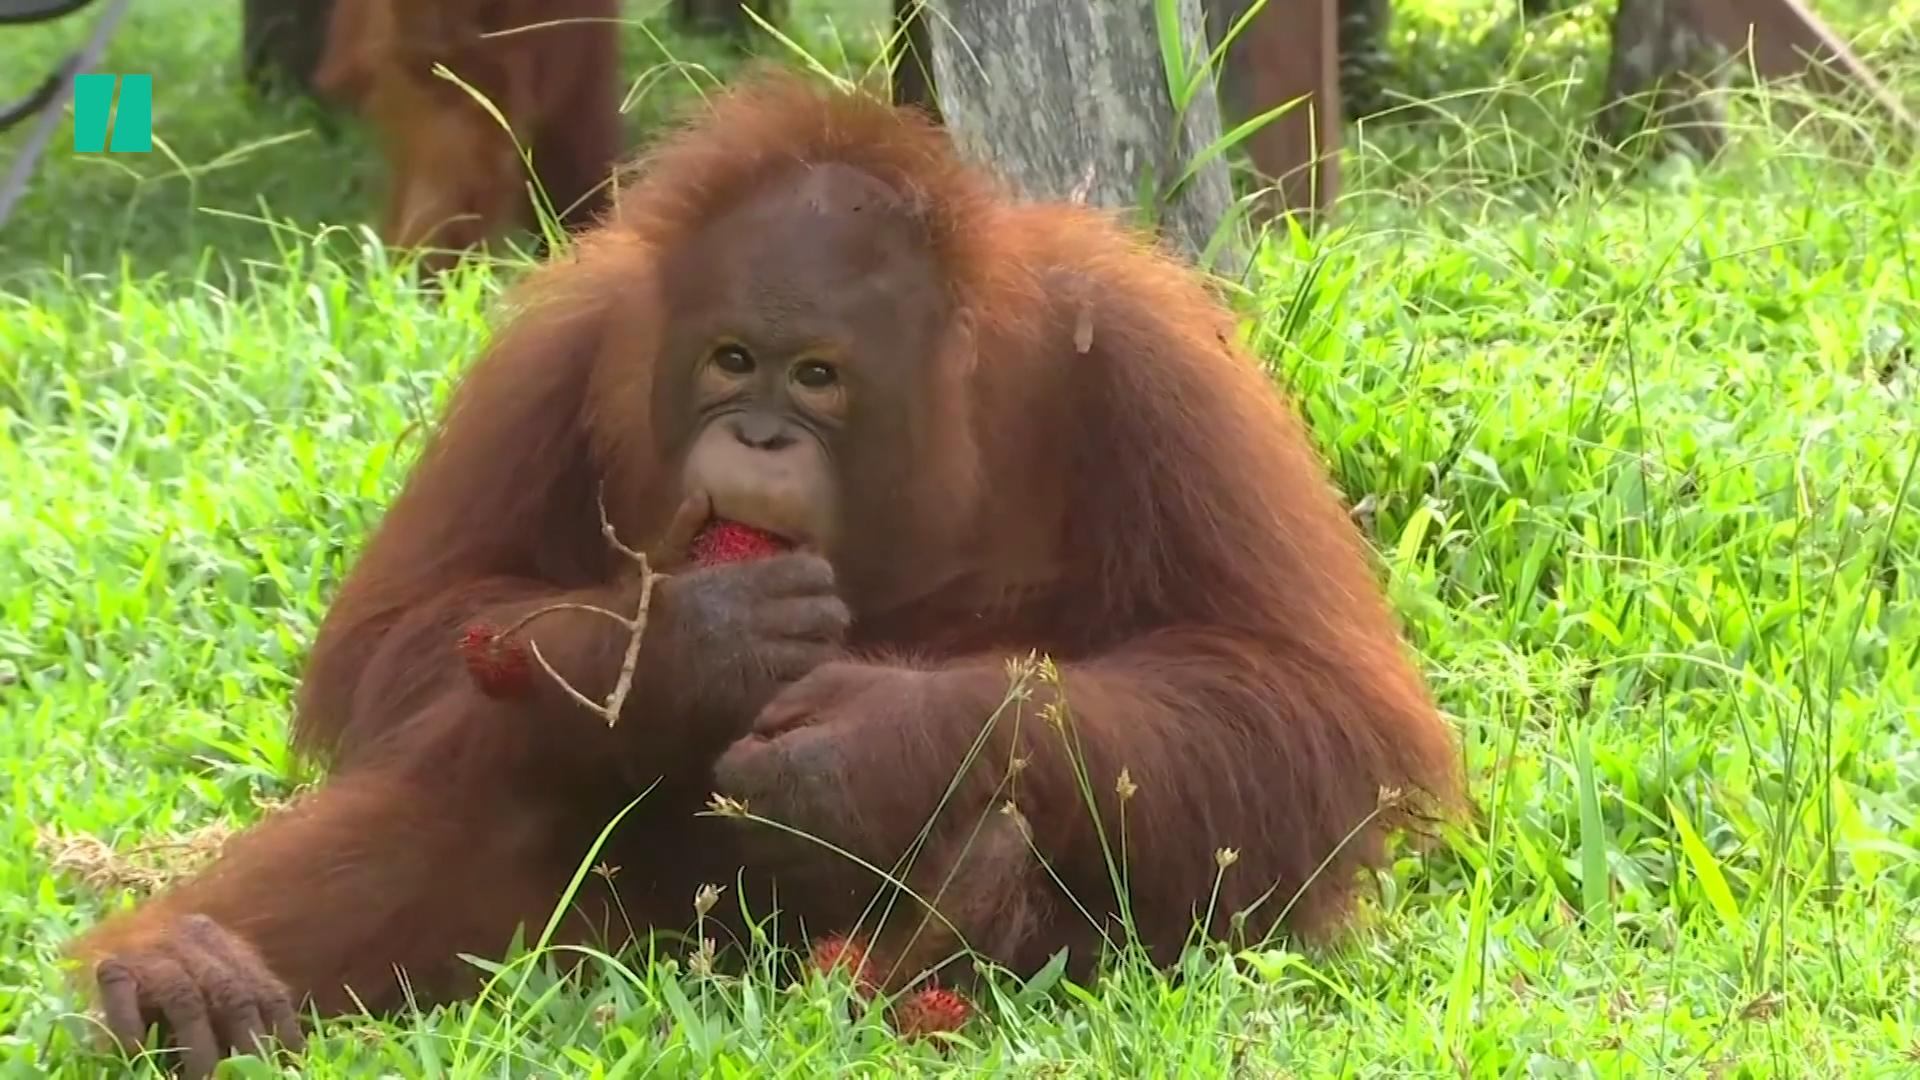 Researchers Use Drones And Thermal Imaging To Count Orangutan Populations